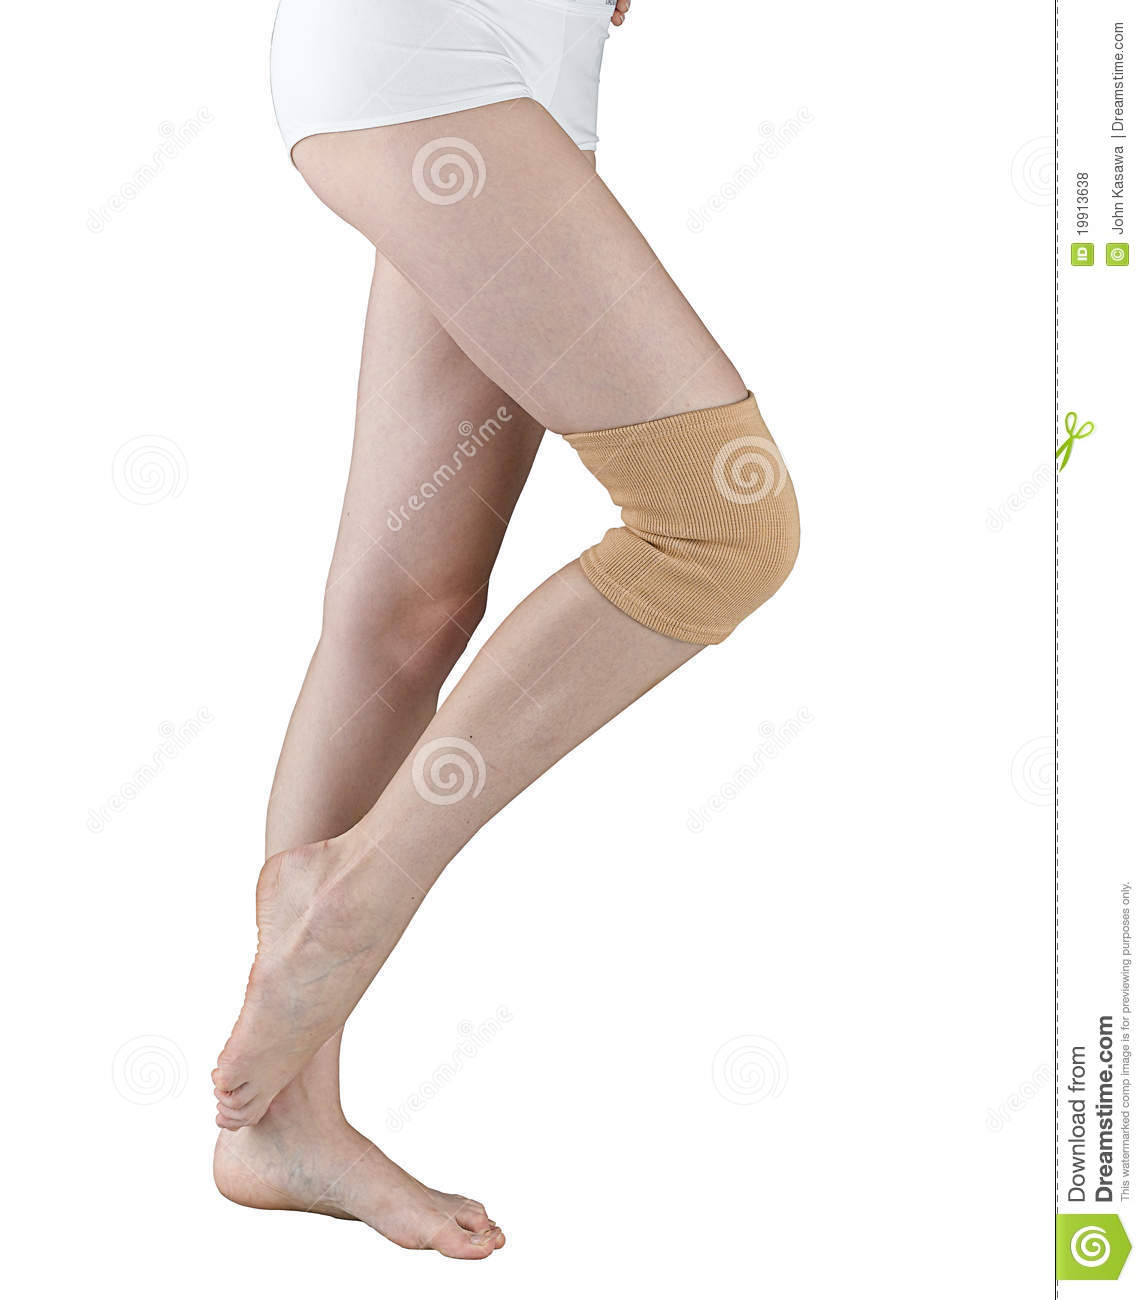 how to keep knees flexible